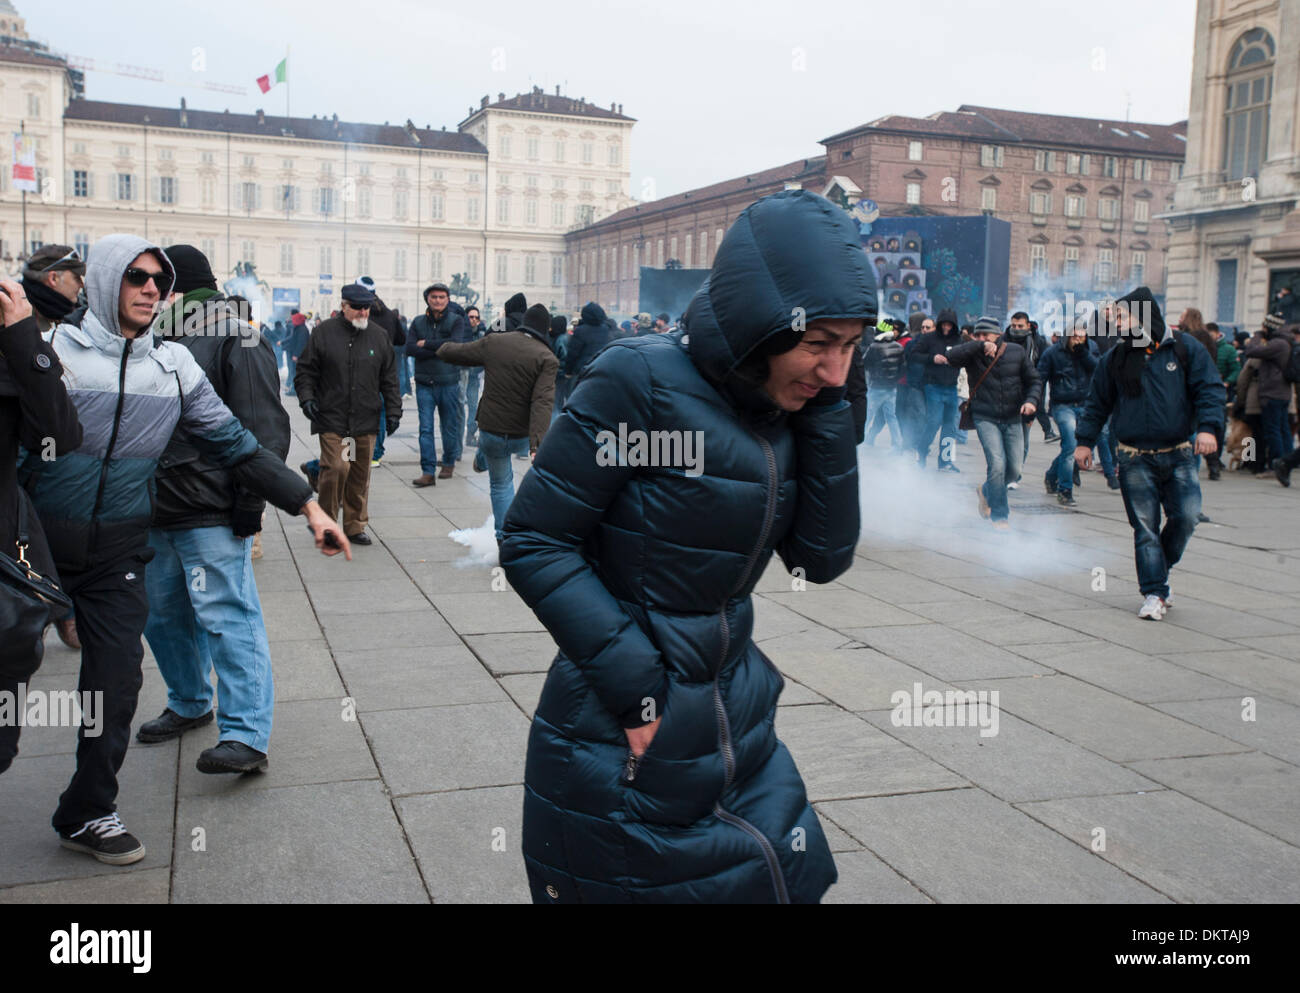 Italy Turin Piedmont 9th December 2013 demostration of ' Movimento dei forconi ' ( Pitchforks movement ) as interested the  entire Italian peninsula, The most difficult in Turin. In the Pictures tension's moment in Piazza Castello Credit:  Realy Easy Star/Alamy Live News - Stock Image